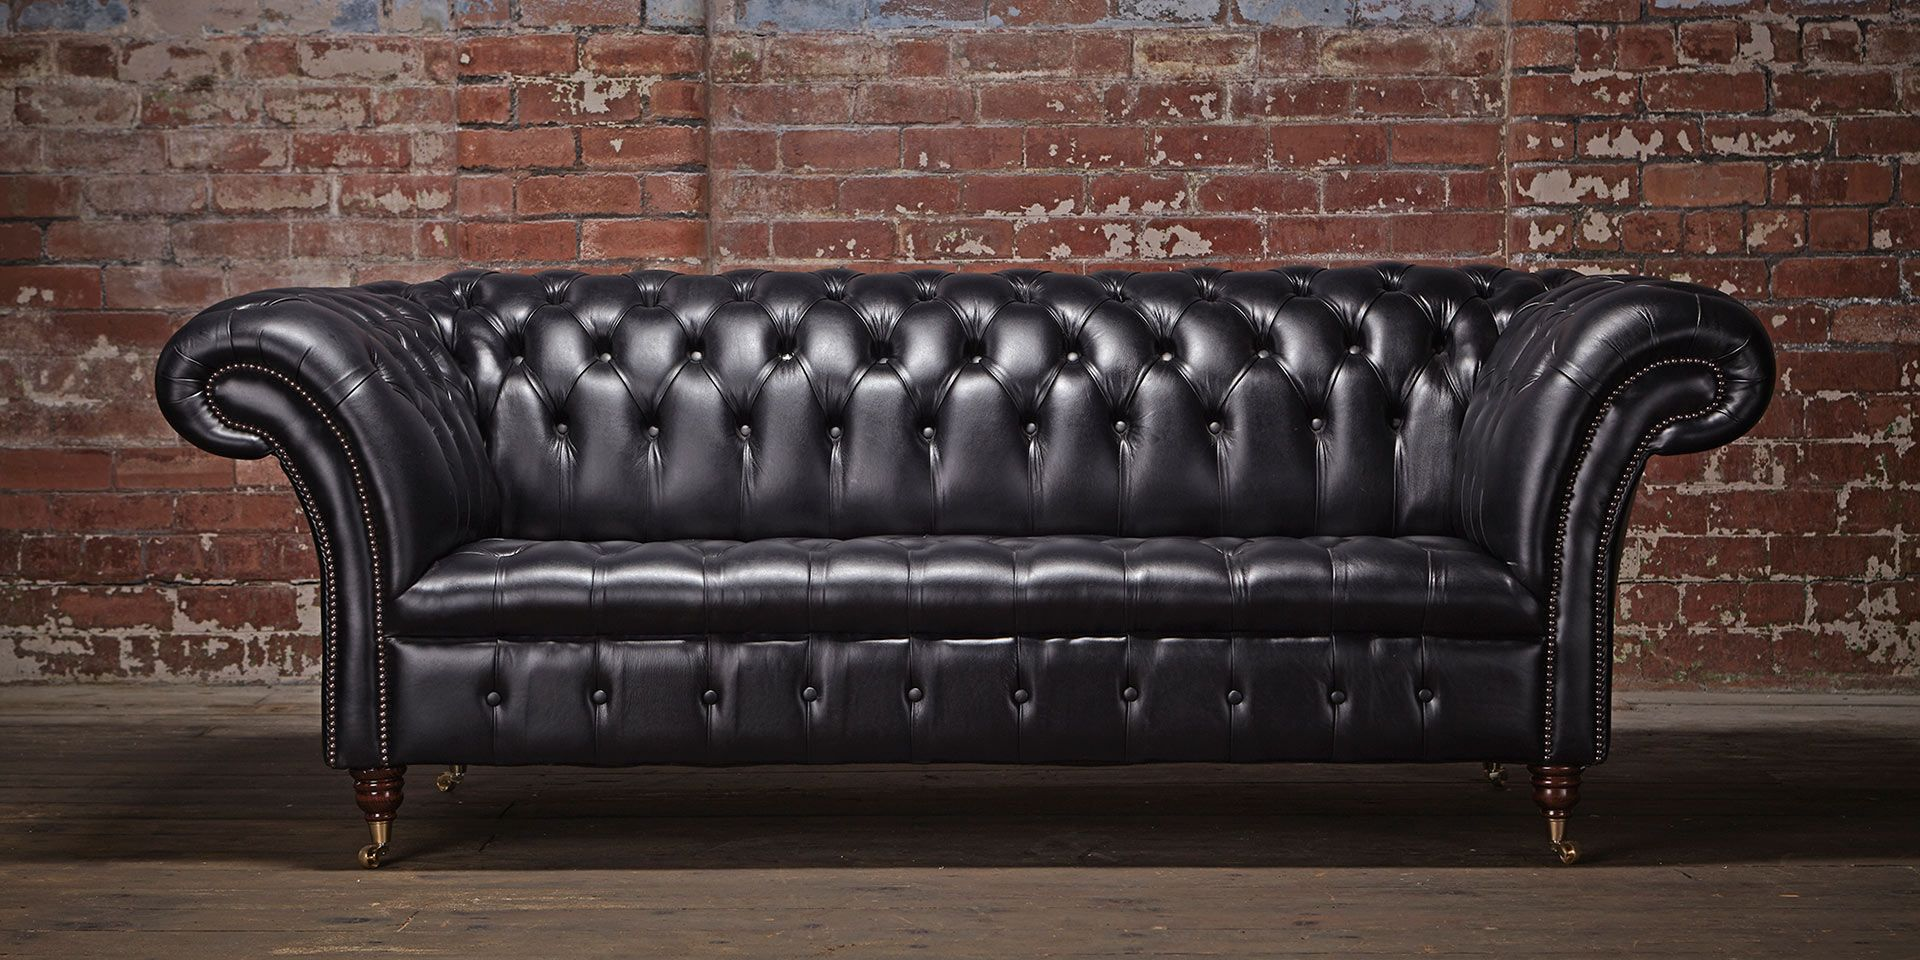 Black Chesterfield Sofas-The Ultimate Interior Decision